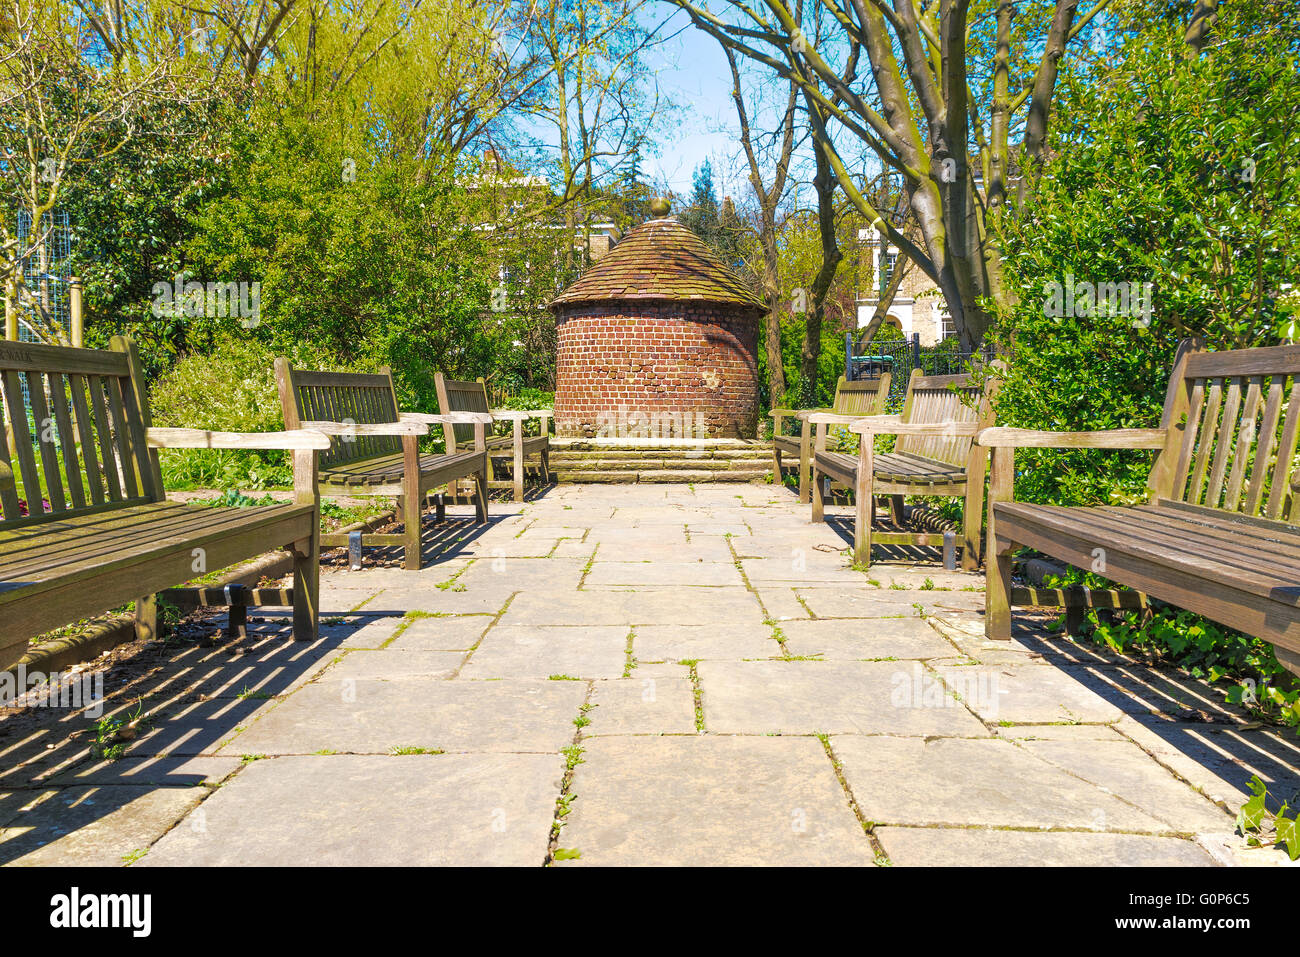 A small circular red brick hut and wooden benches in the sun at the New River Walk, Canonbury, London - Stock Image